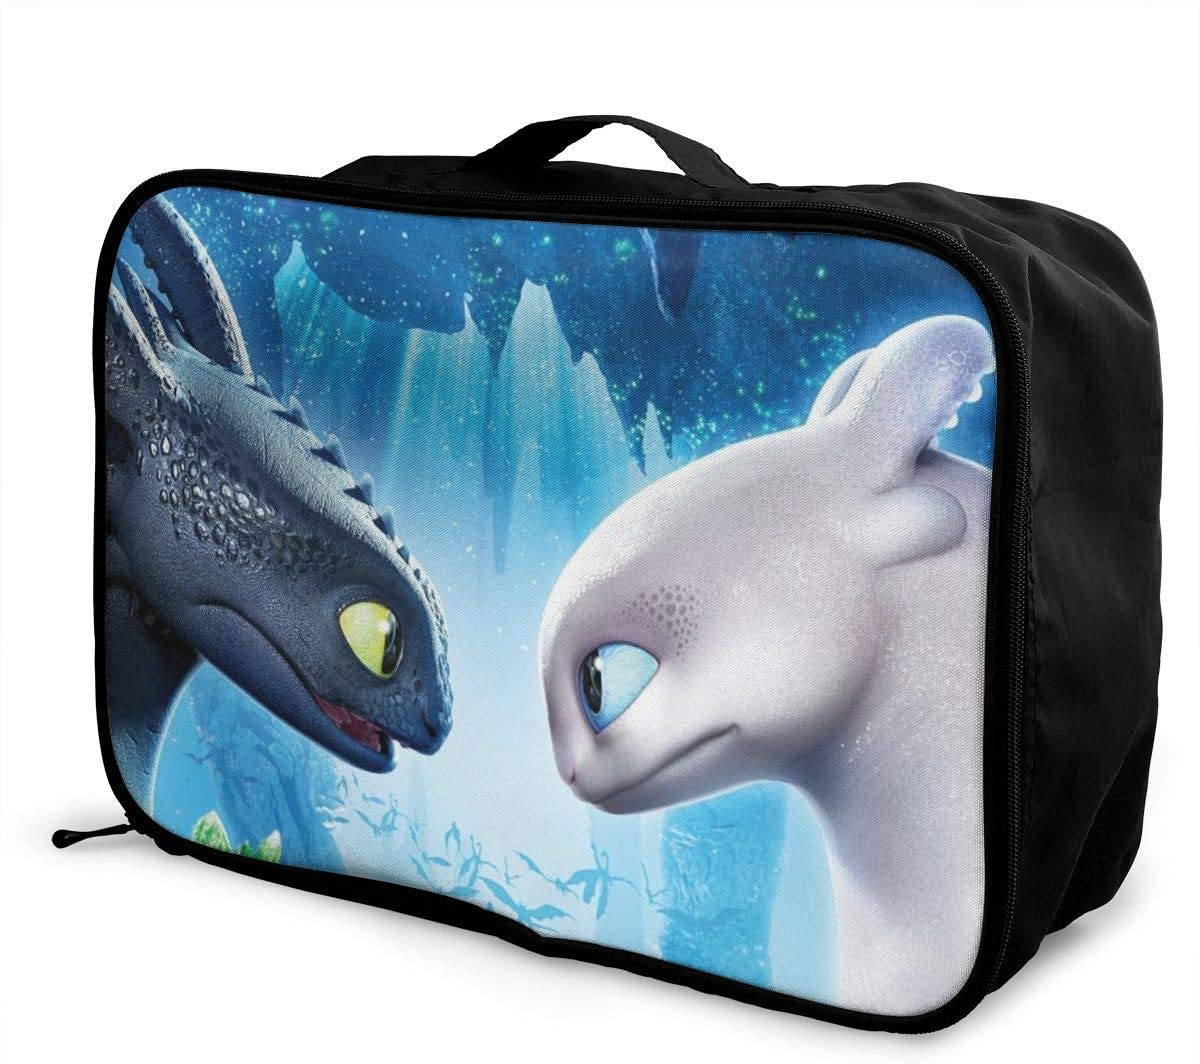 Travel Luggage Bag How To Train Your Dragon Lightweight Super Large Capacity Hand Luggage Bag Weekend Bag Overnight Carry Bag